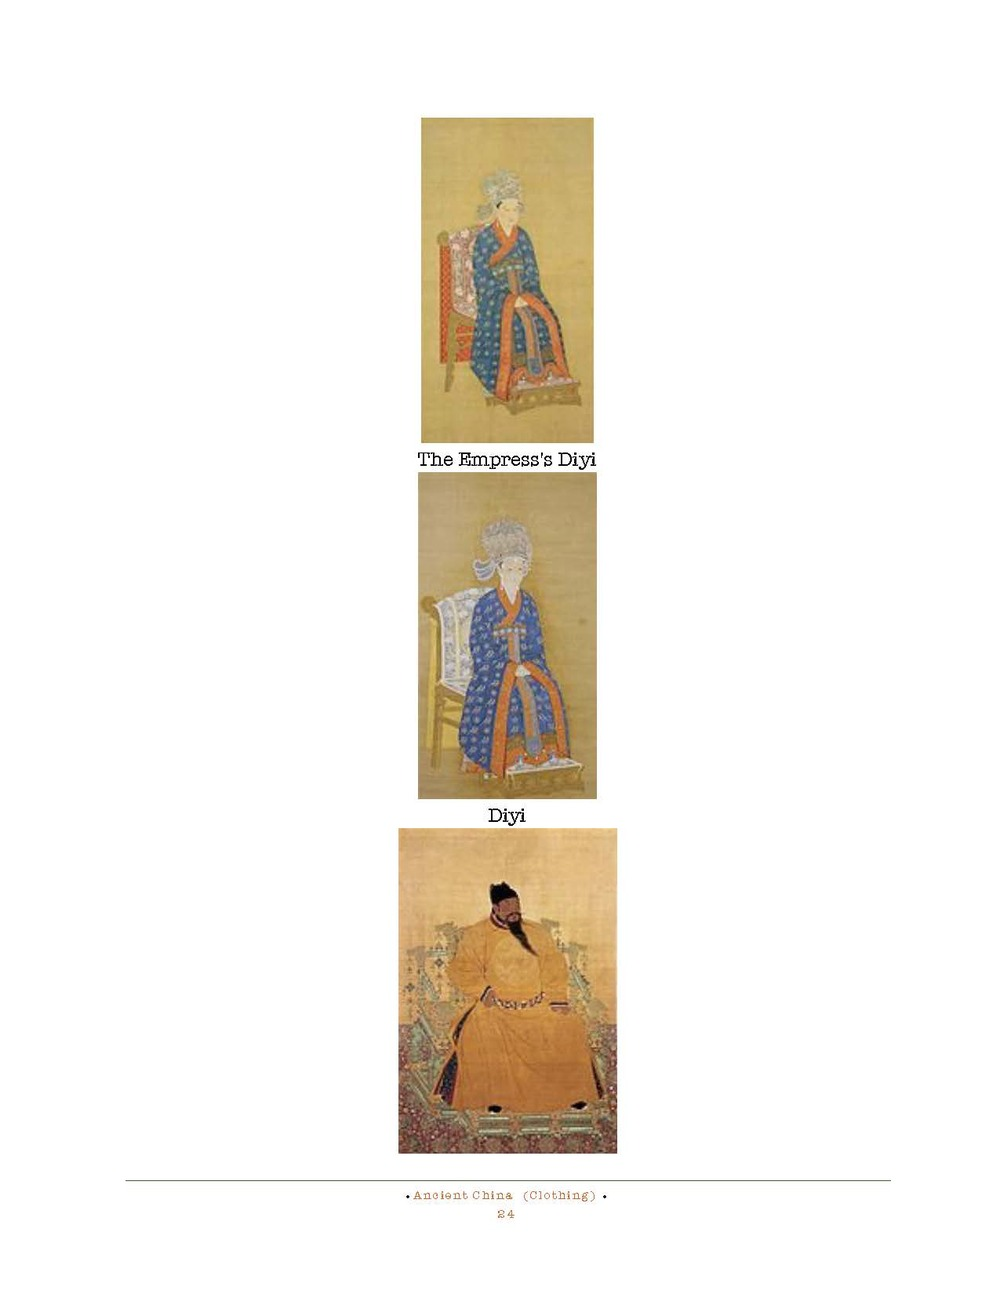 HOCE- Ancient China Notes (clothing)_Page_24.jpg